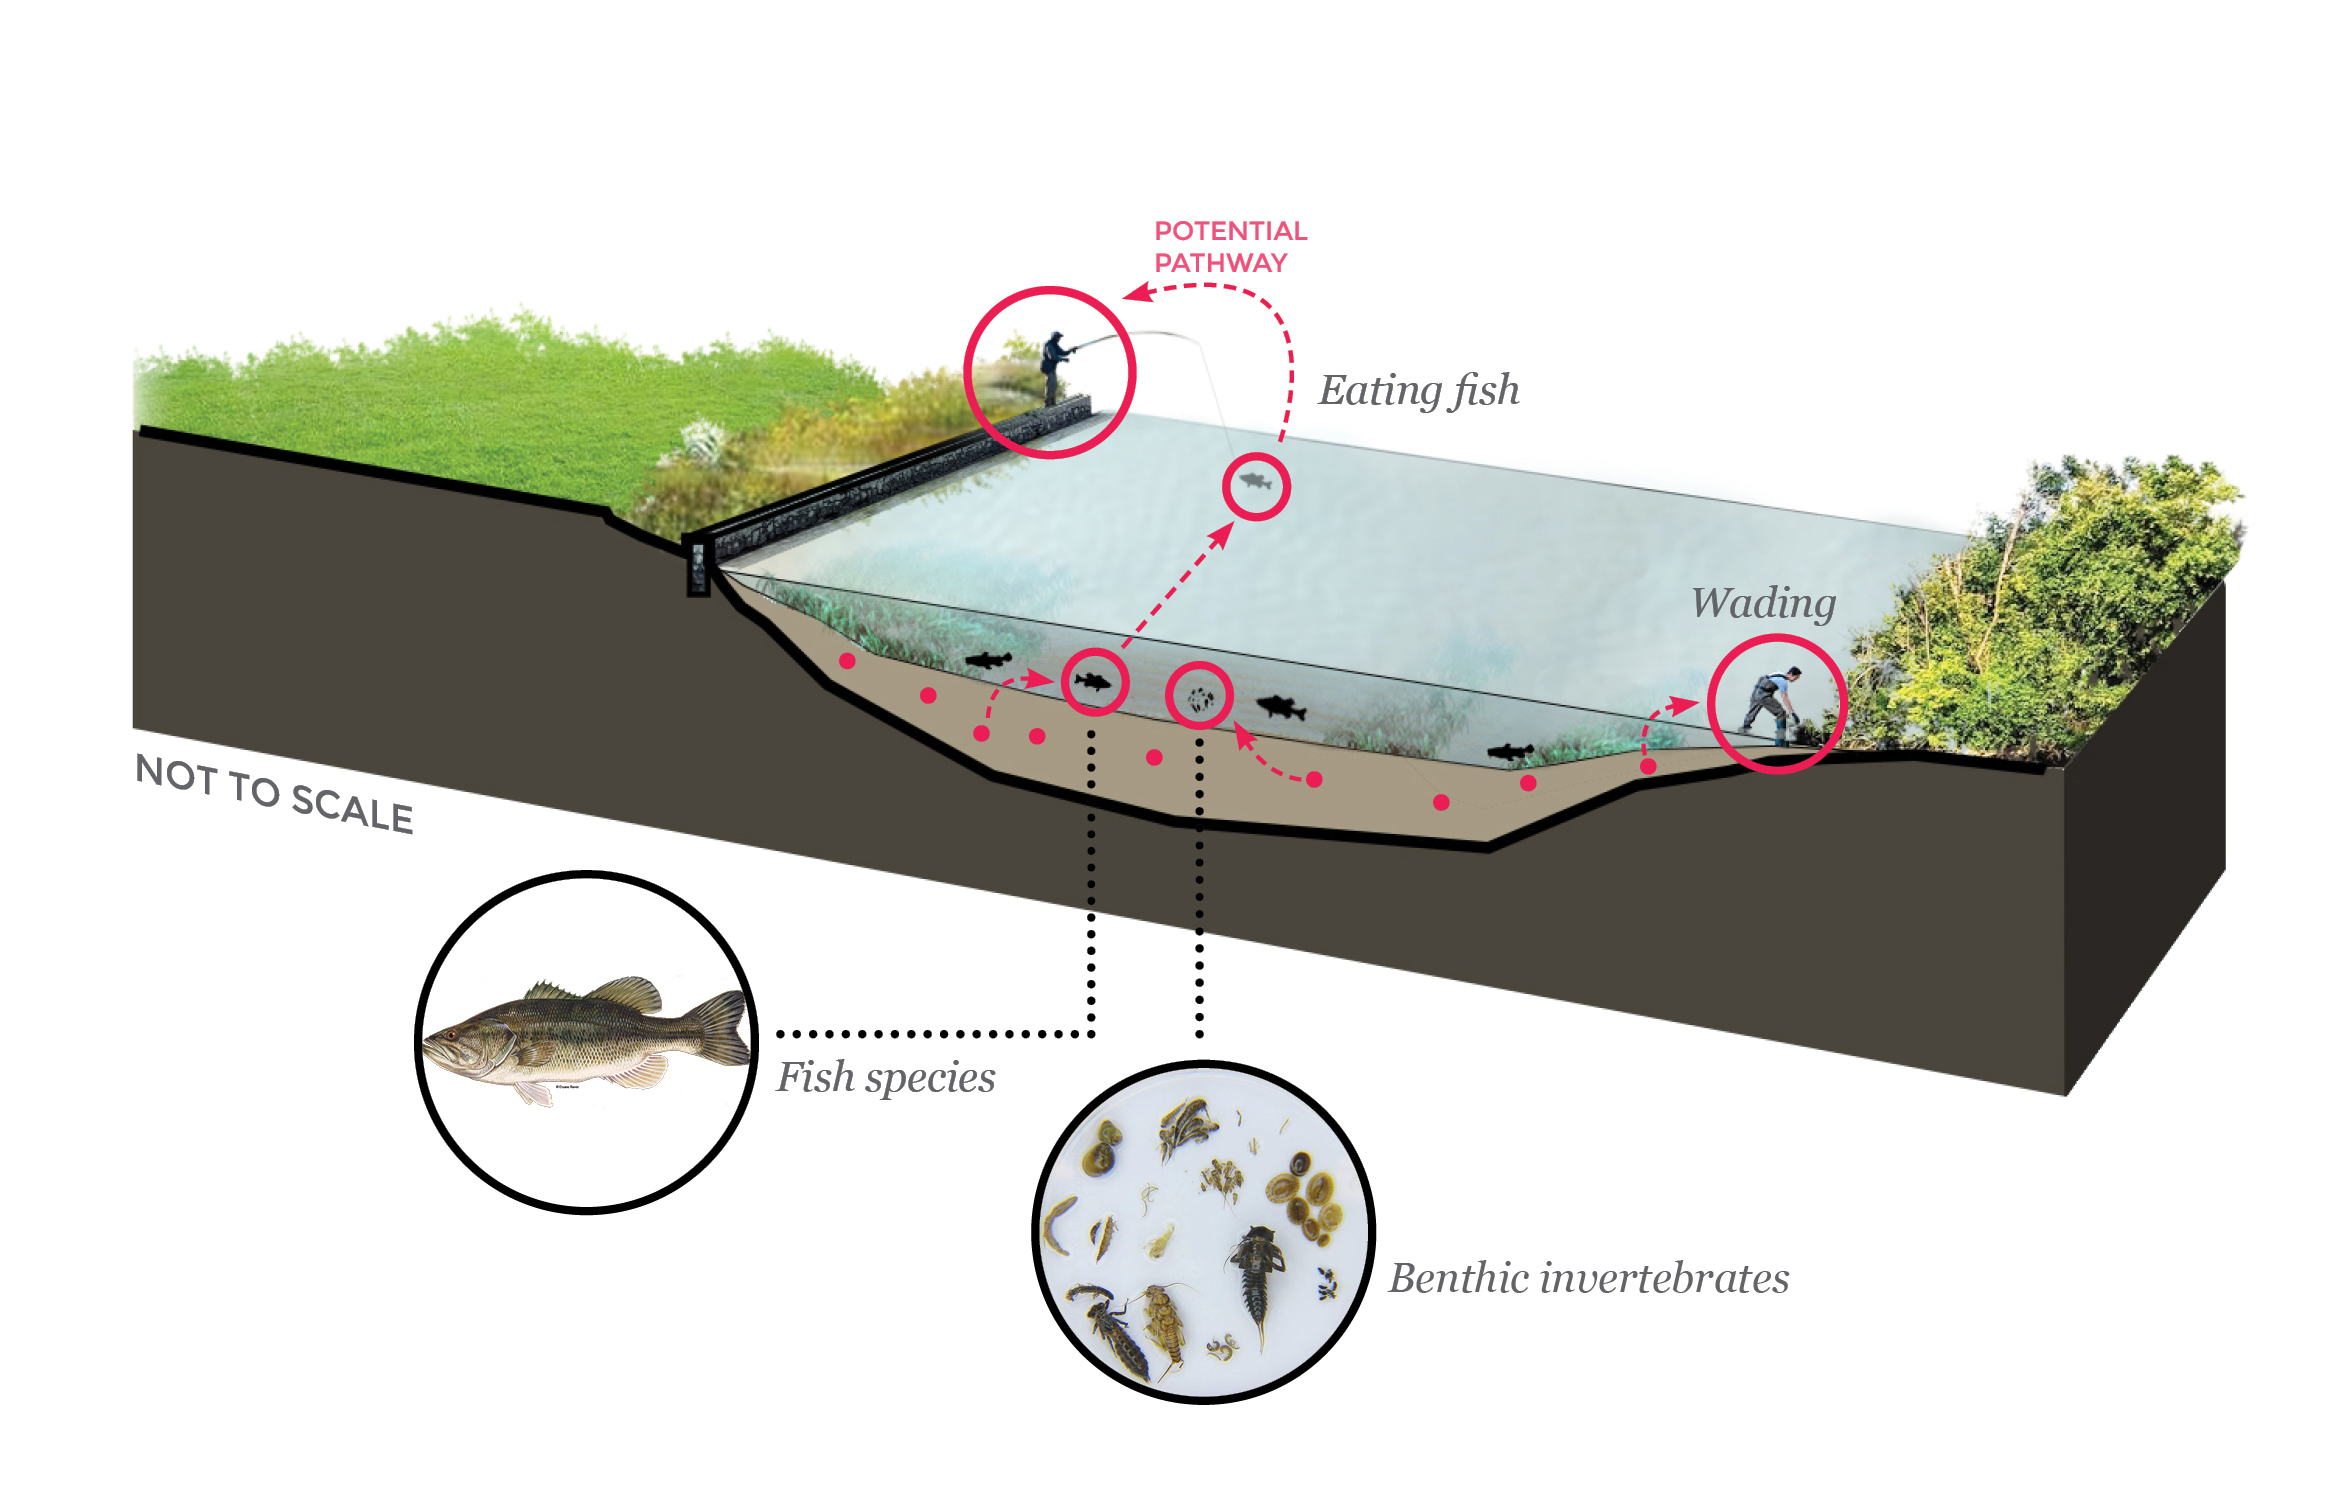 People who eat fish caught in the river are at risk from the contamination, as are people who wade in the sediment. Fish and benthic invertebrates (small animals like snails who live at the bottom of the river) are also at risk.